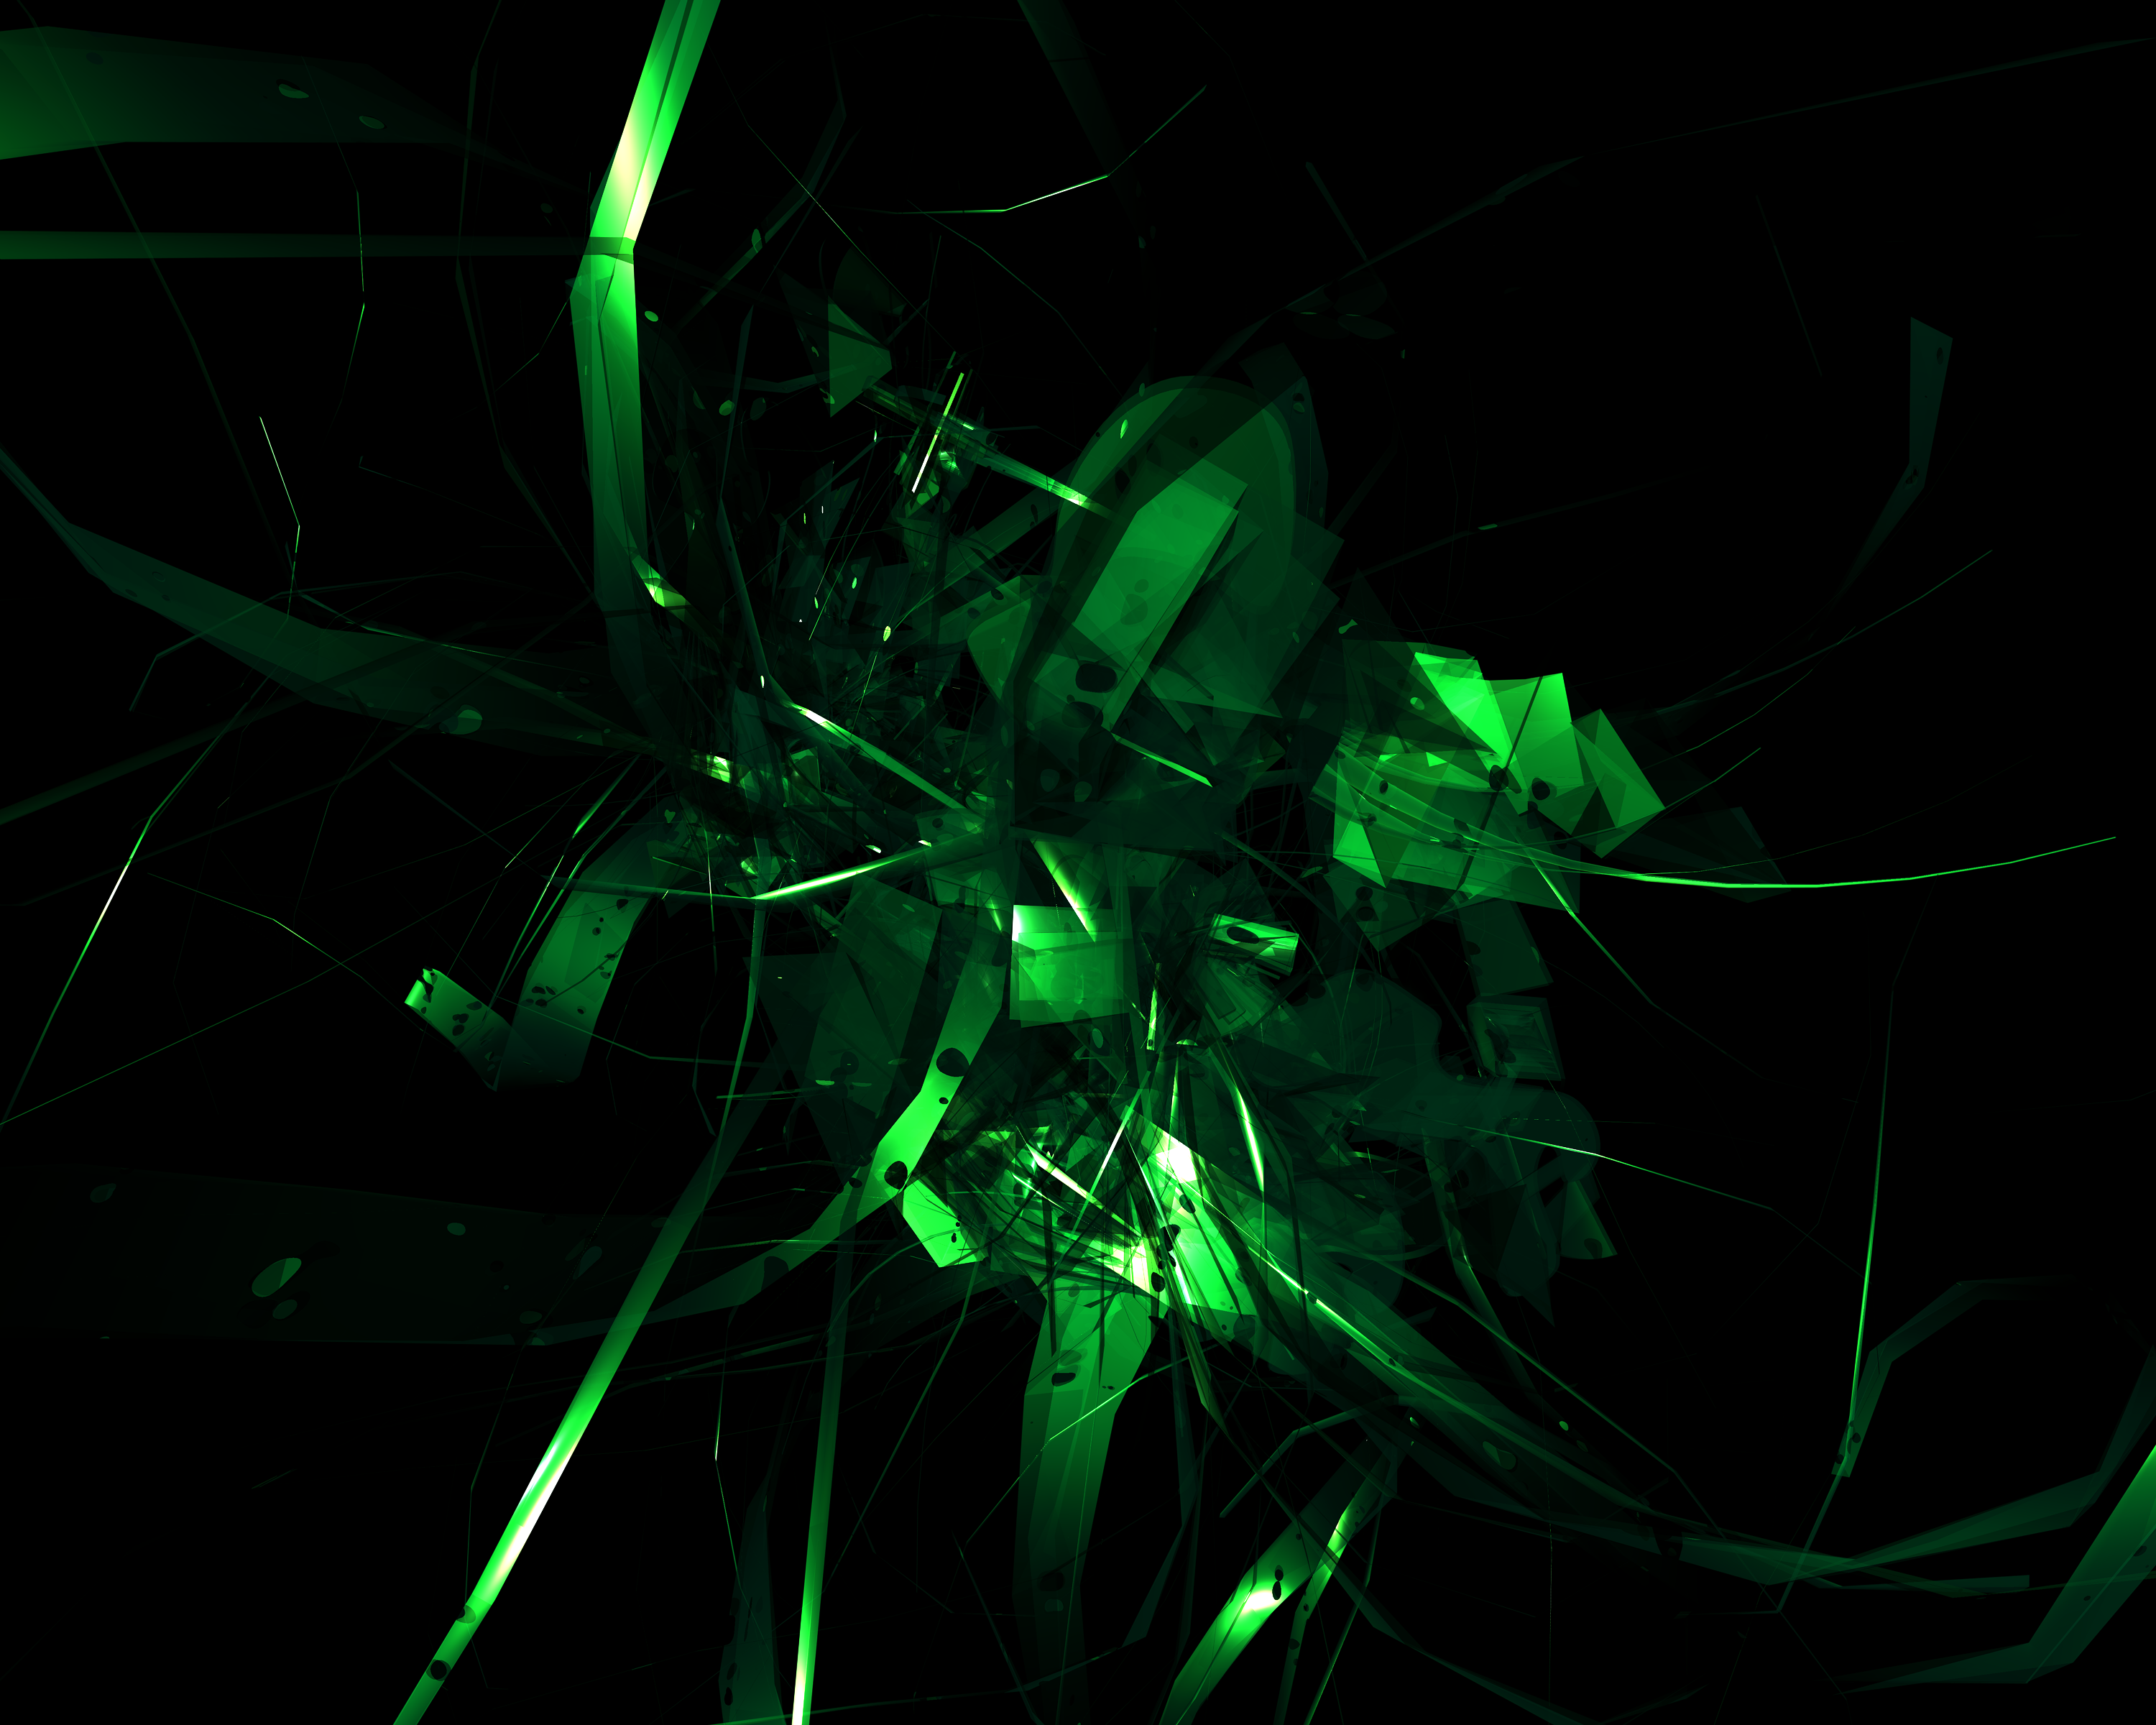 Green Effect C4D by SpartanTragedy on DeviantArt